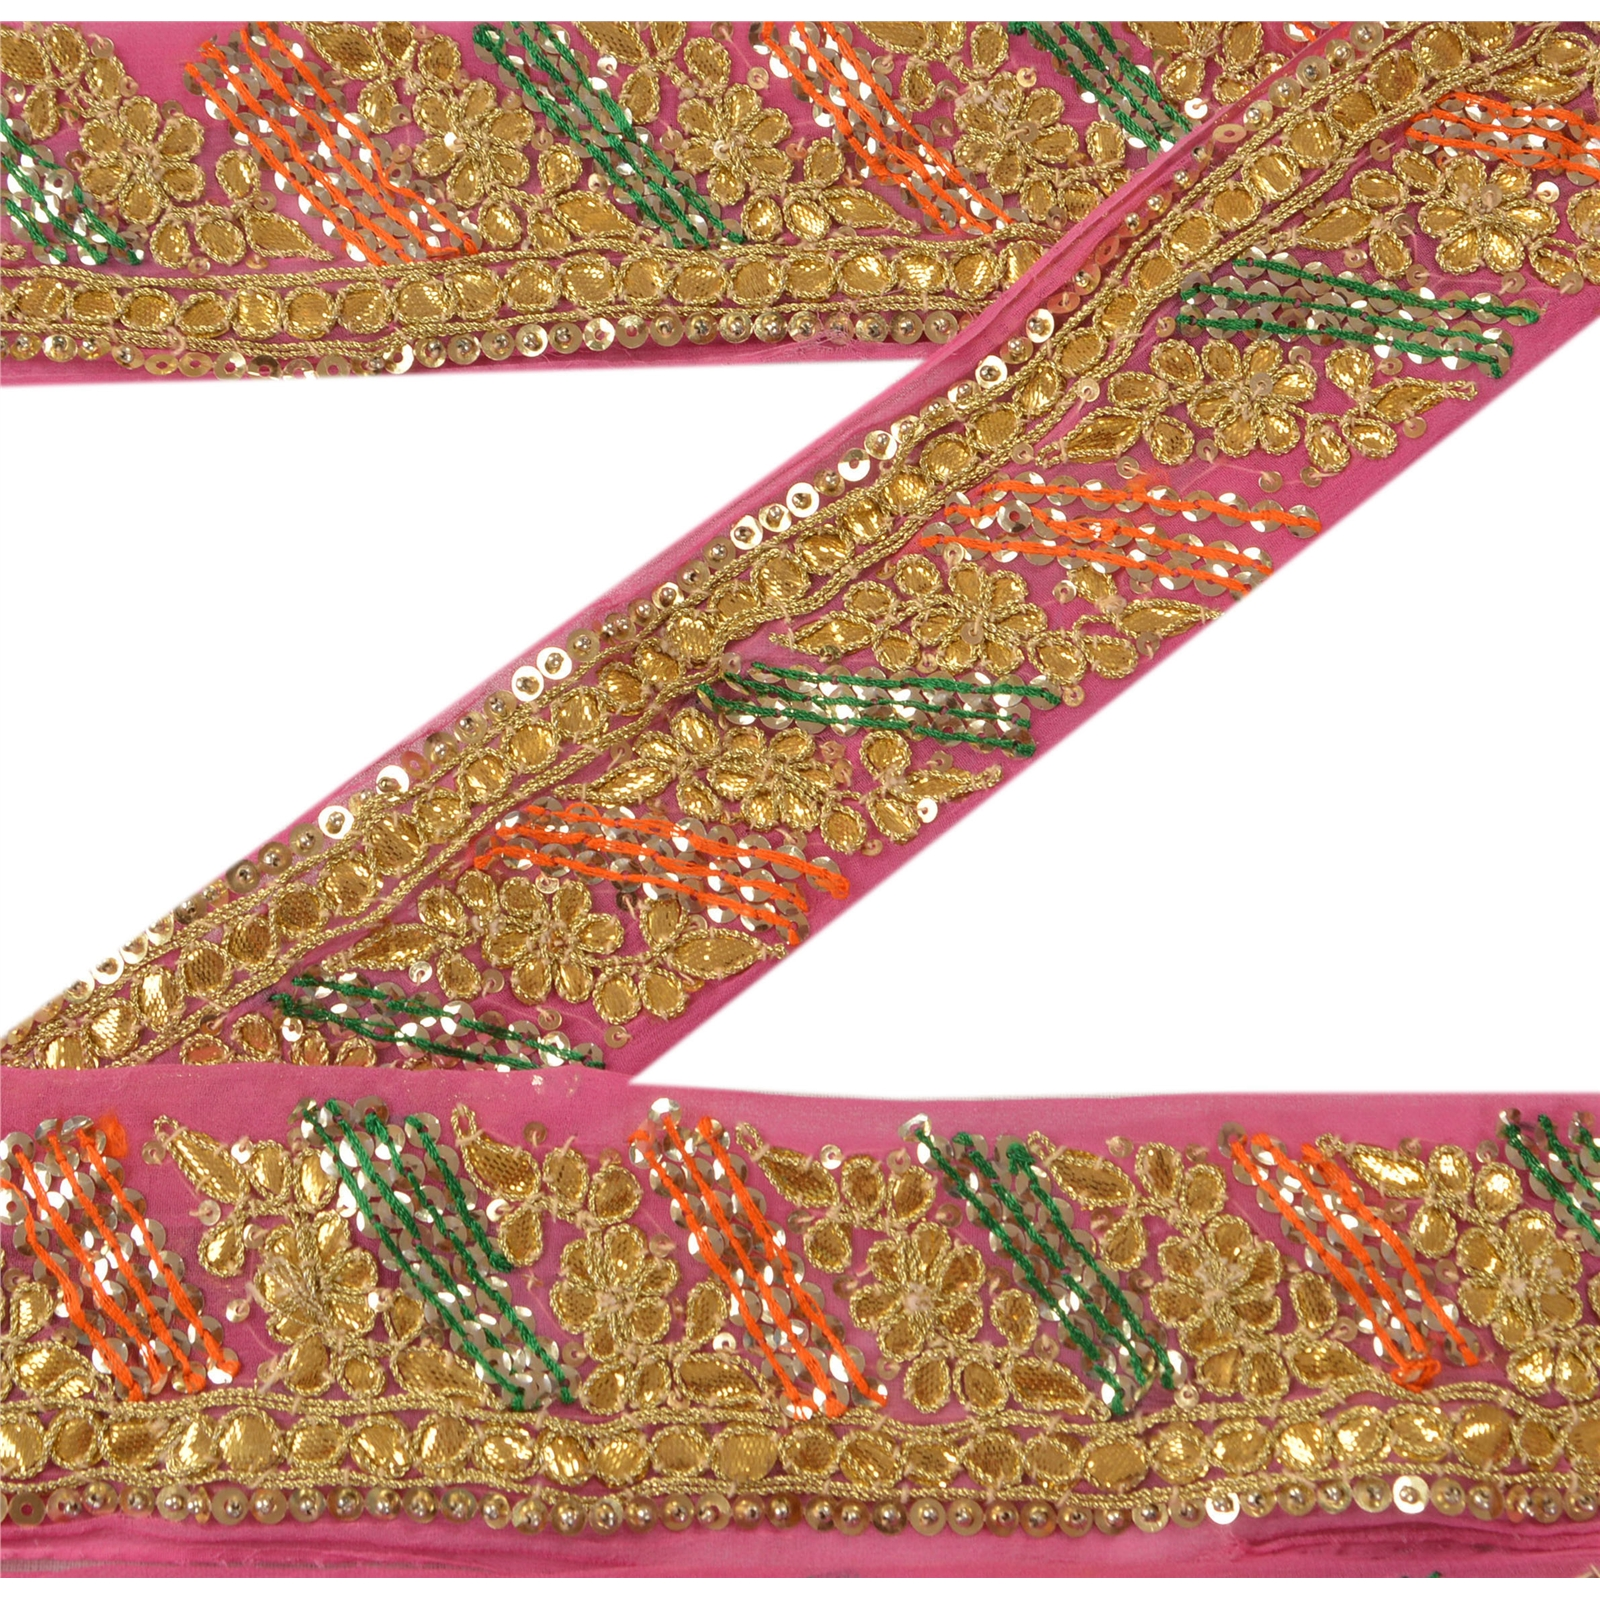 Just Vintage Sari Border Antique Hand Beaded Indian Trim Sewing Maroon Lace Easy To Use Crafts Trims